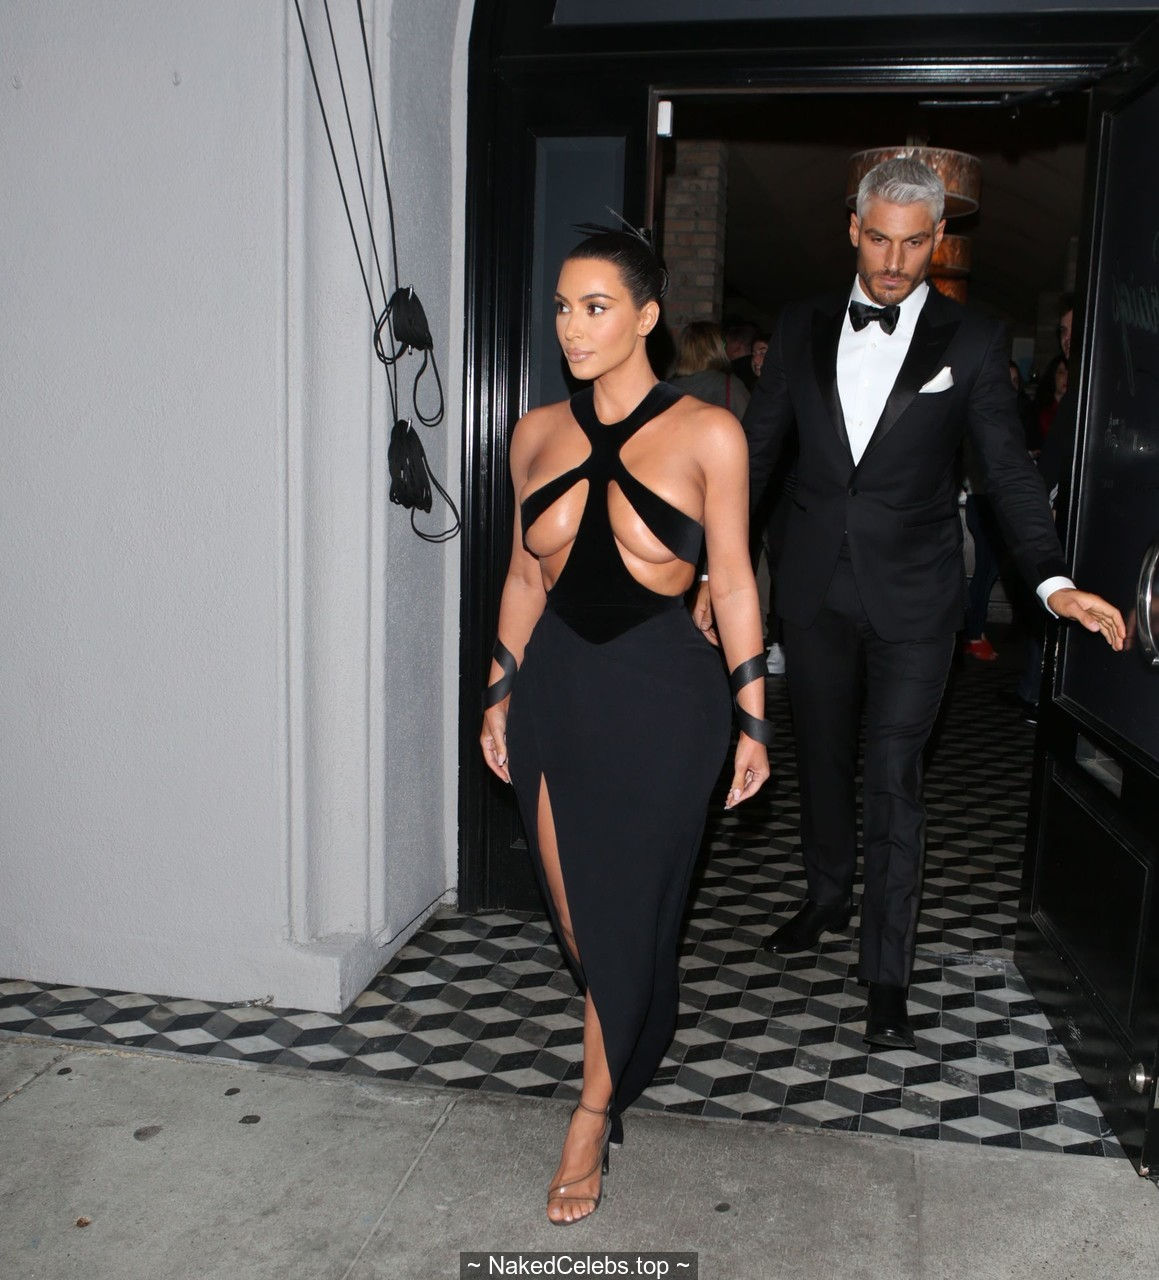 Kim Kardashian almost topless in sexy dress